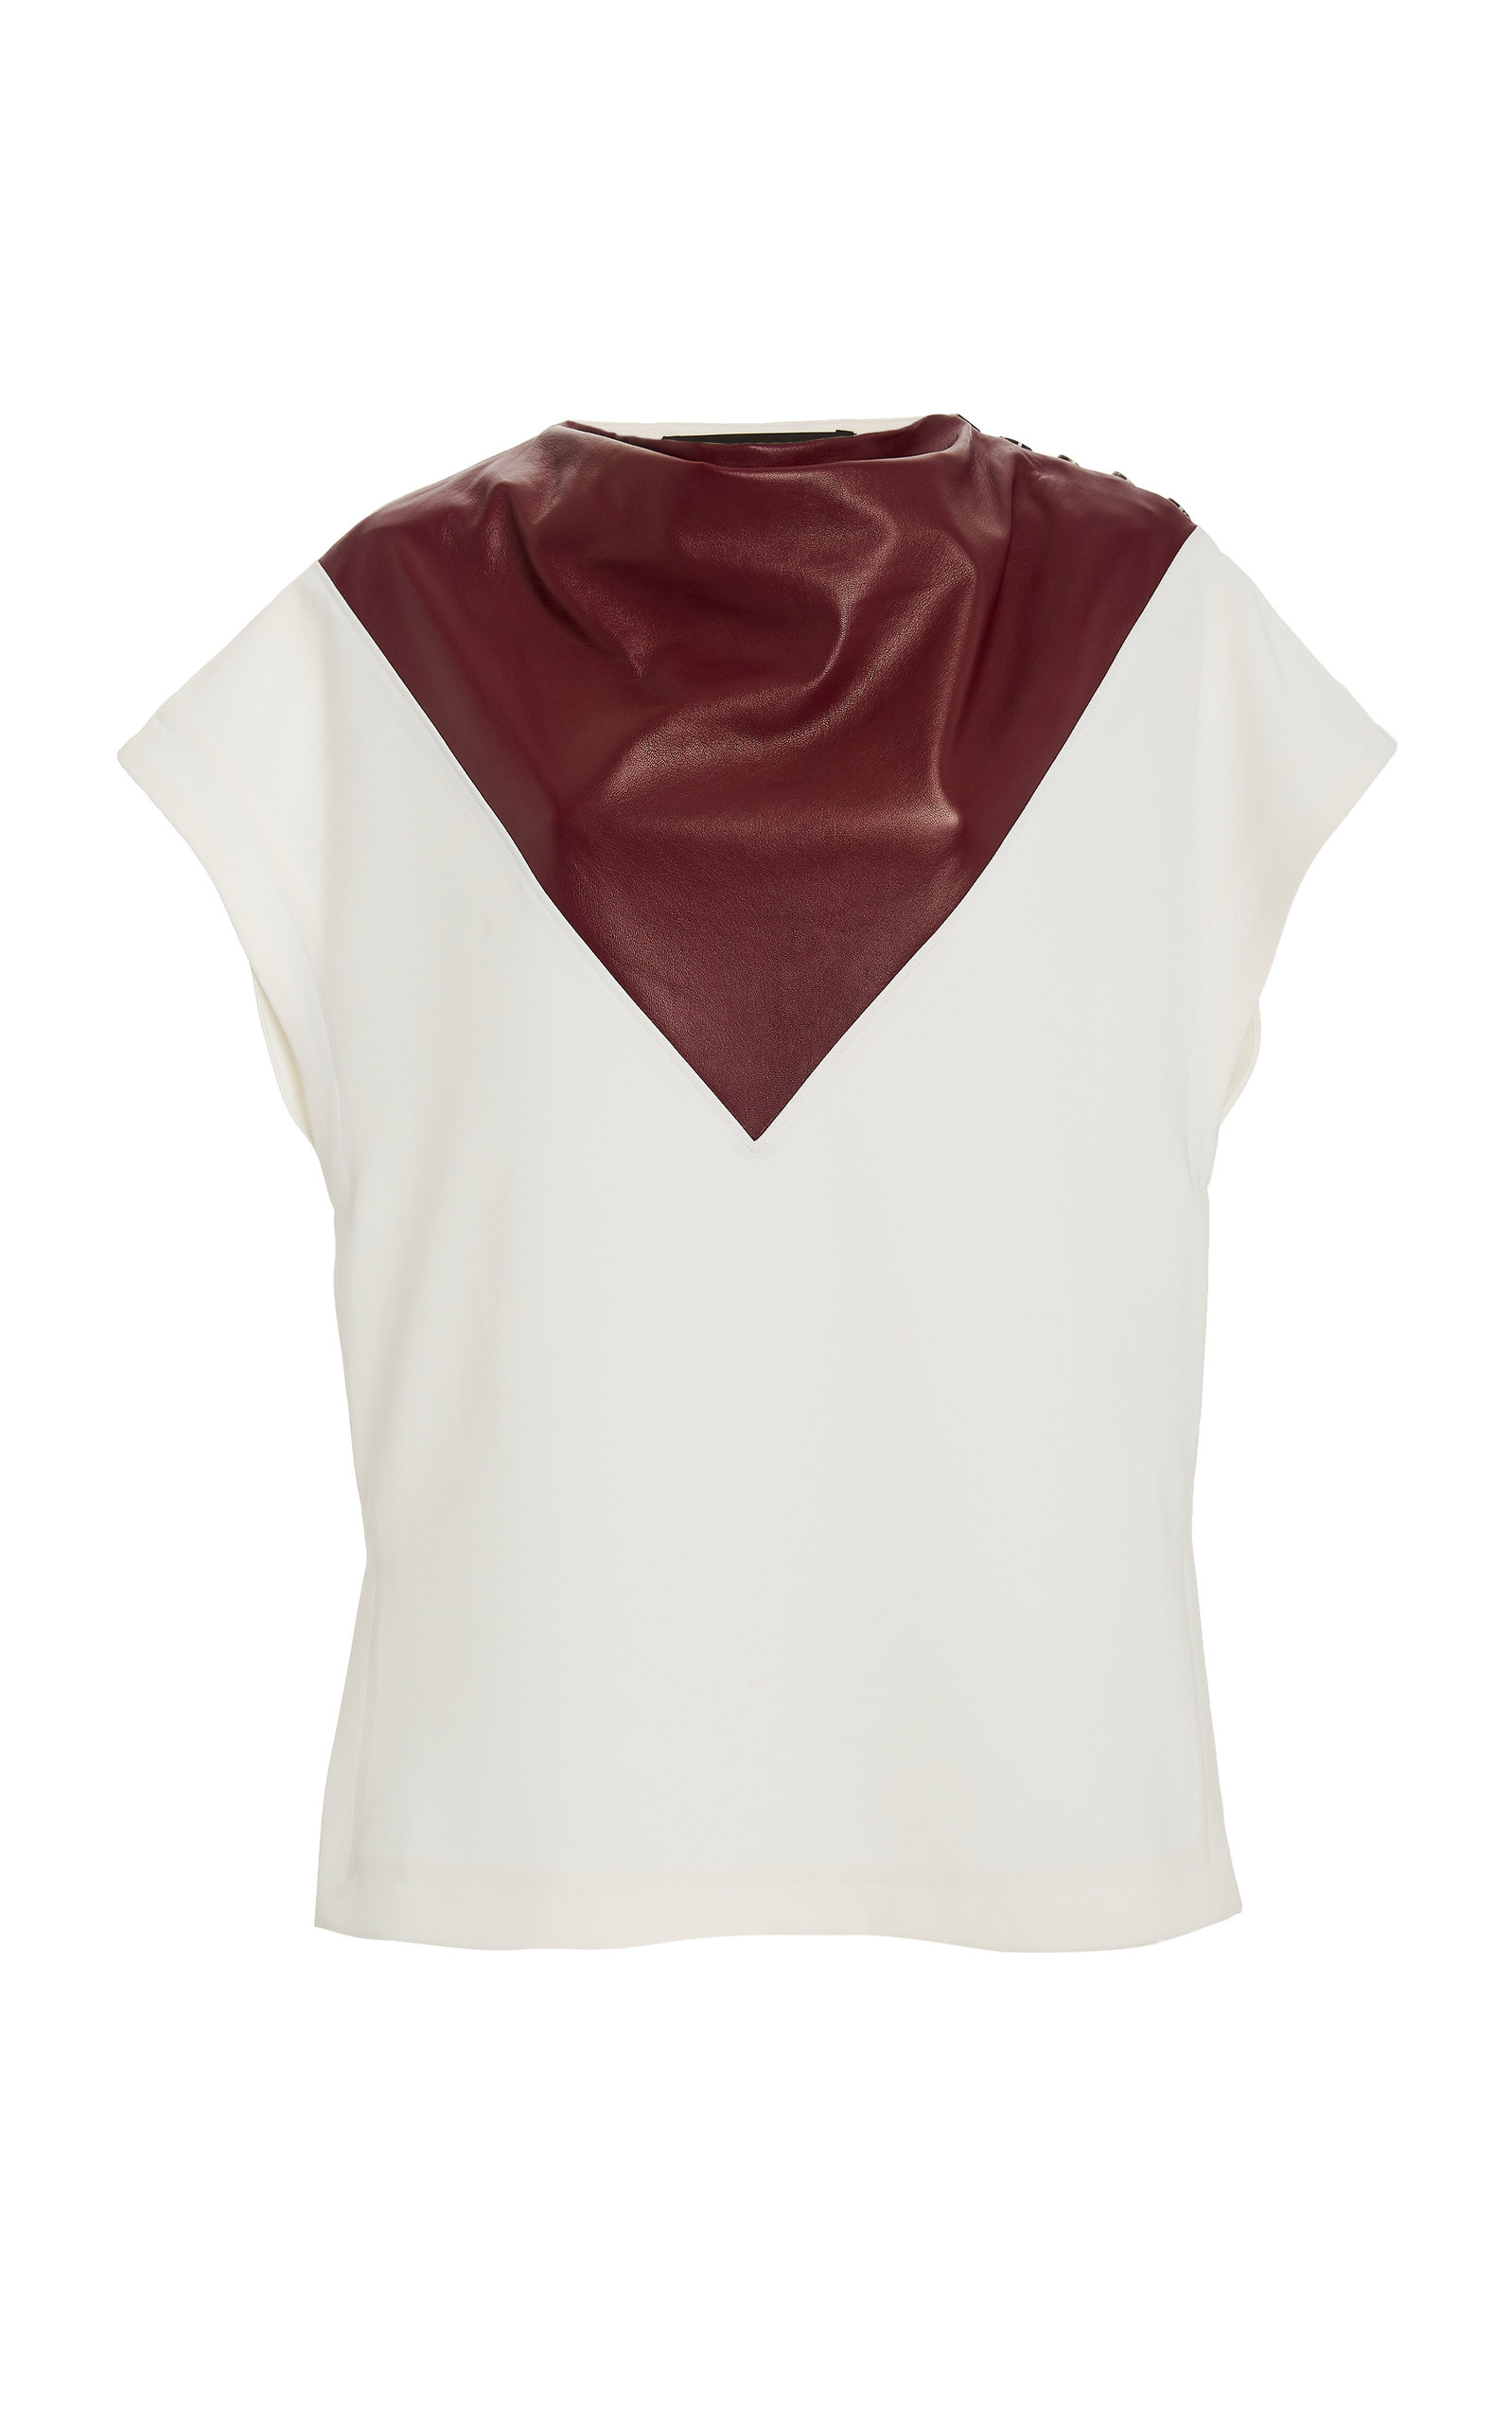 PROENZA SCHOULER BUTTON-DETAILED LEATHER-INSET CREPE TOP